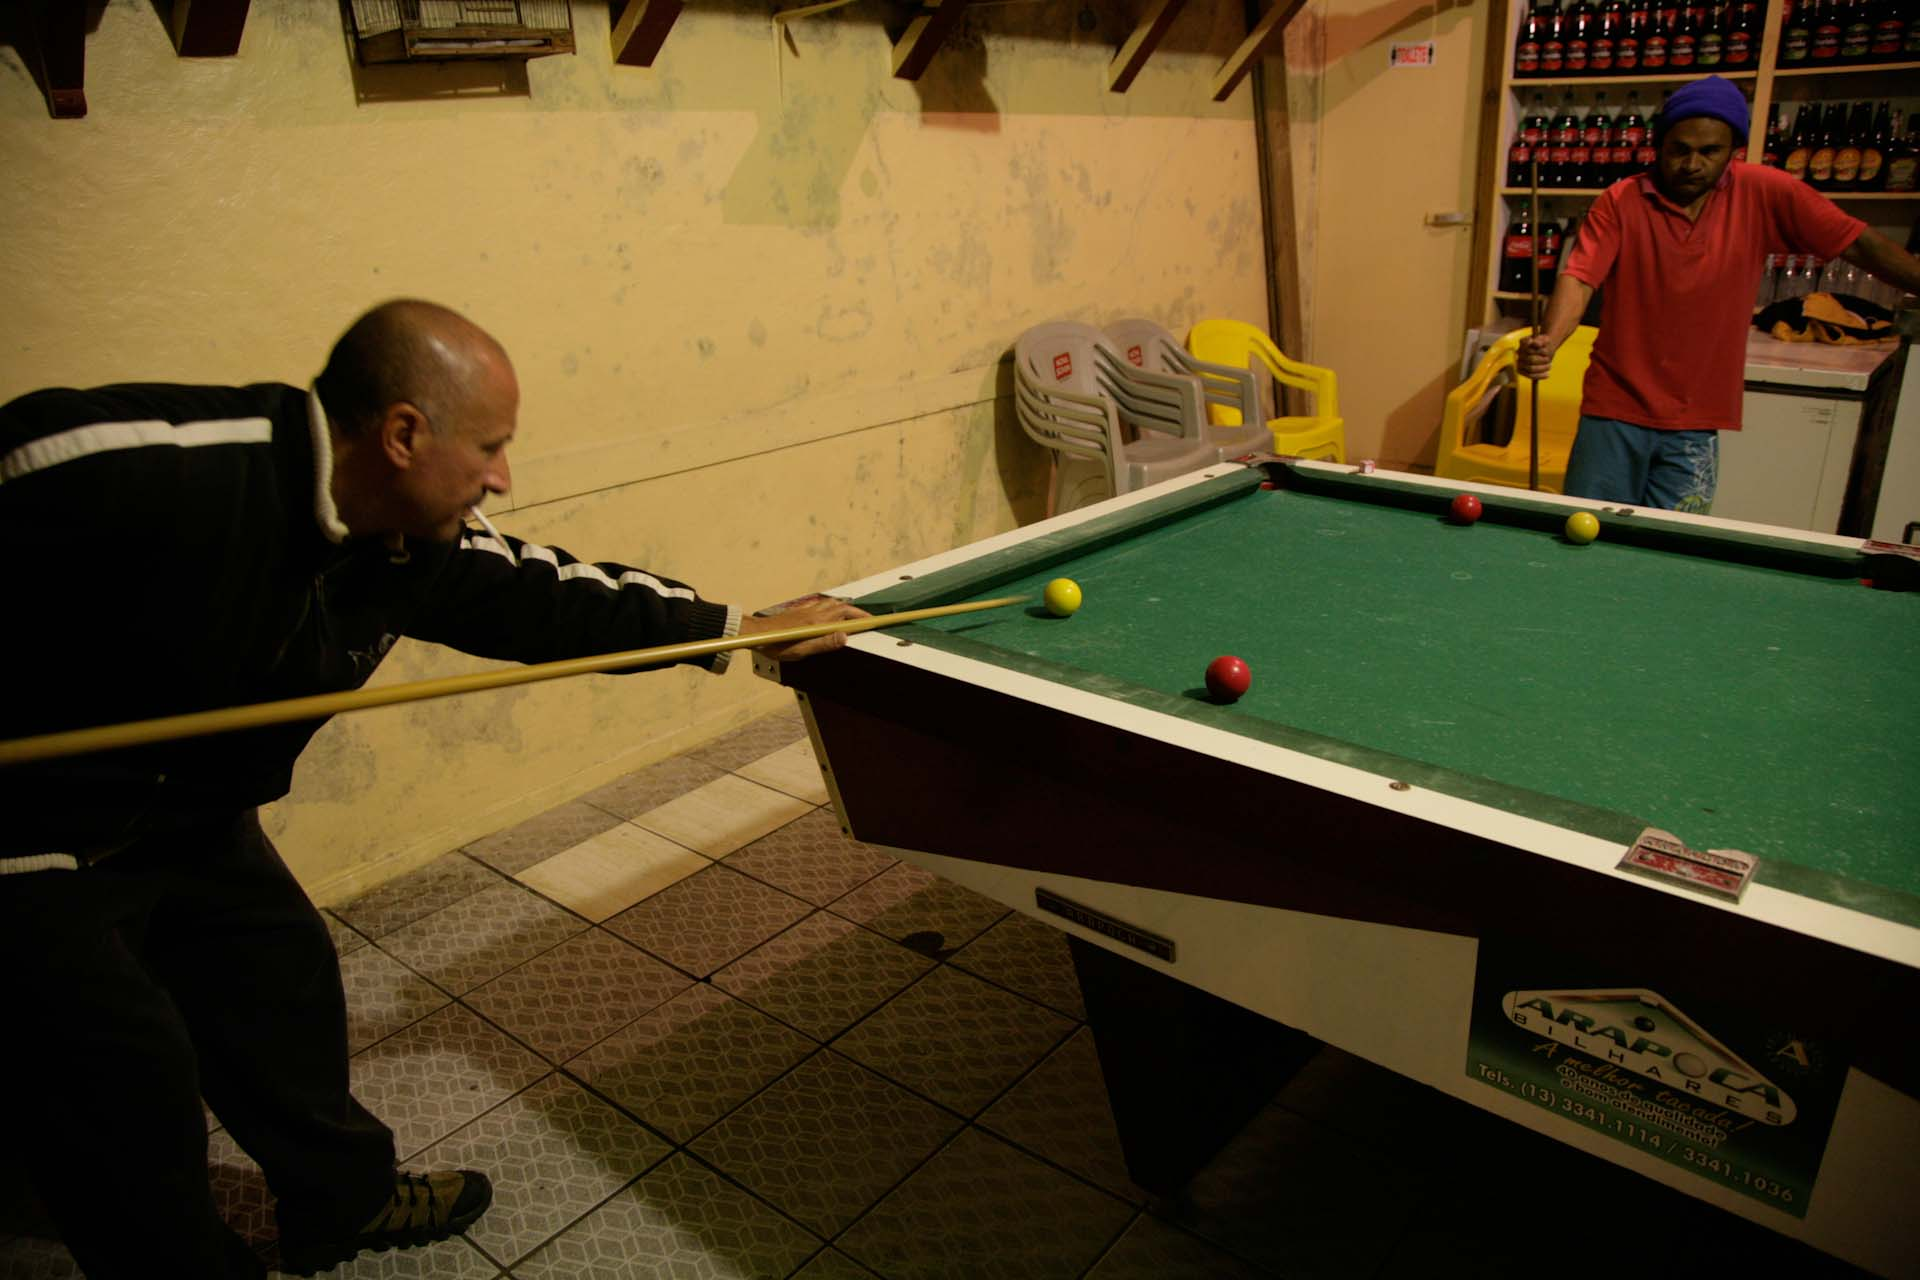 There is not much more than pool billiard to enjoy here..